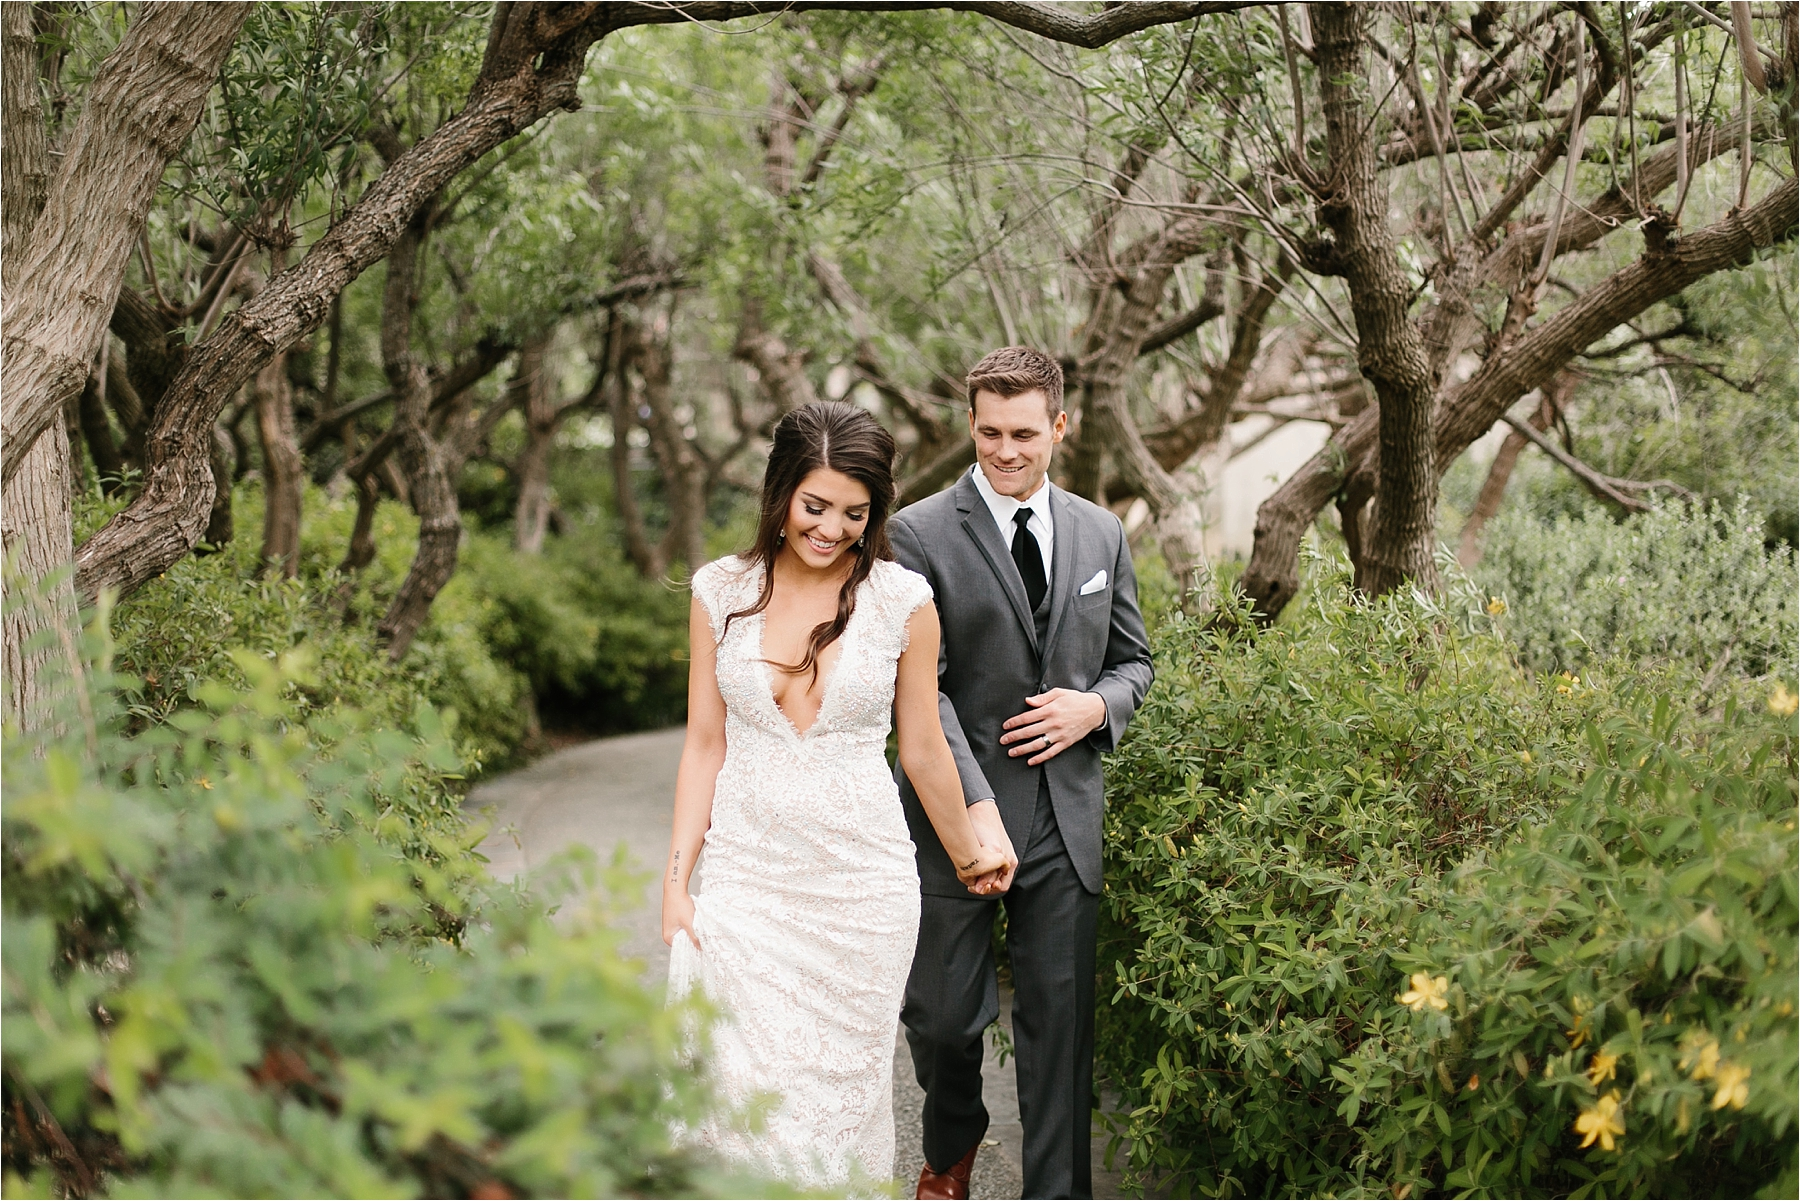 Devyn + Caden __ a Dallas Arboretum Garden Style Wedding by North Texas Wedding Photographer Rachel Meagan Photography __ 050